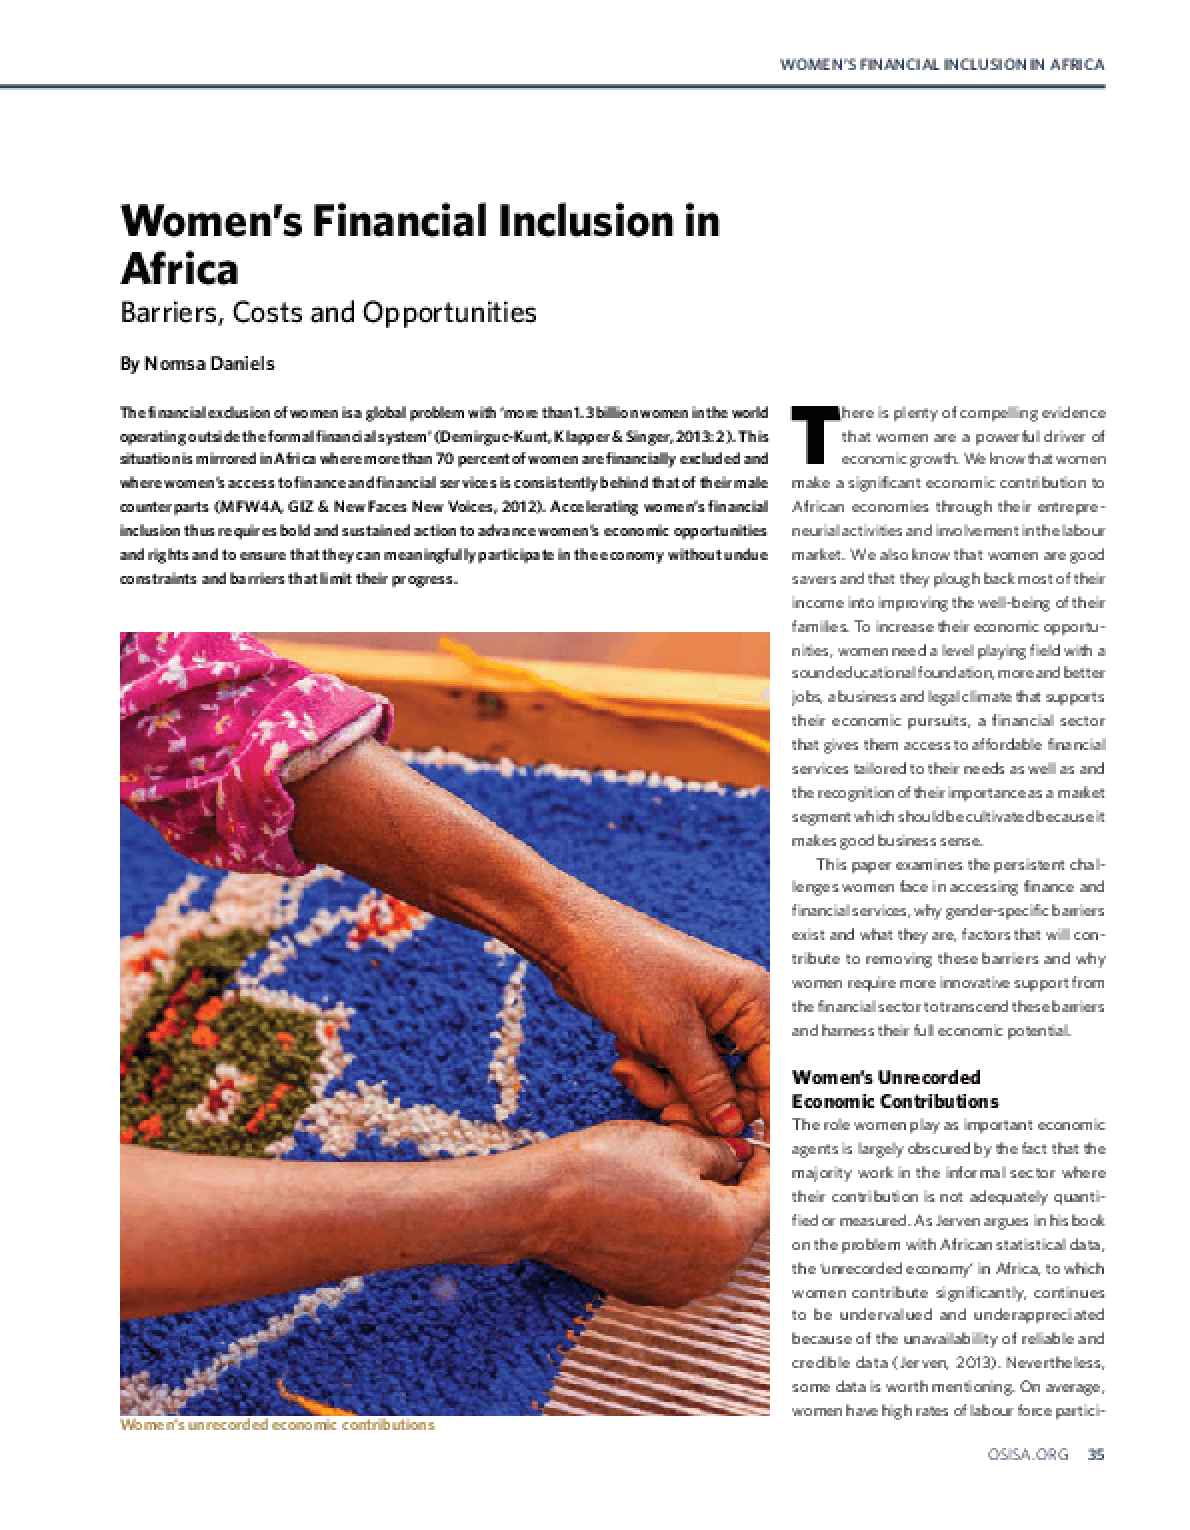 Women's Financial Inclusion in Africa